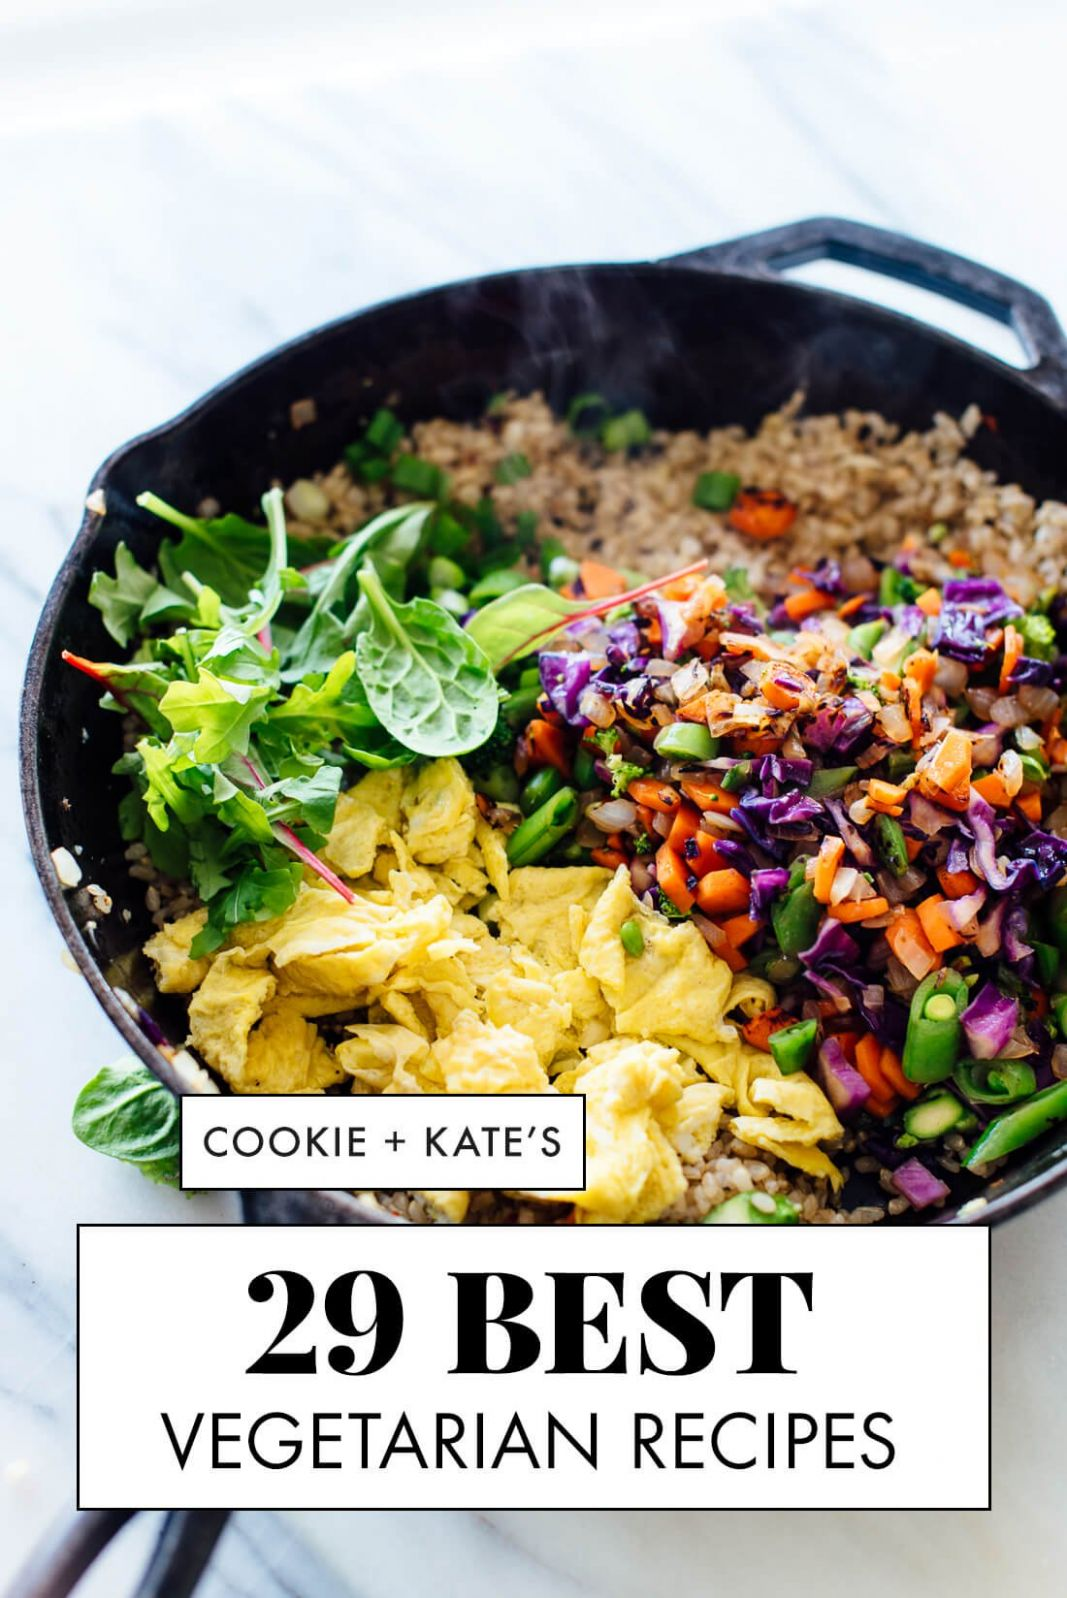 11 Best Vegetarian Recipes - Cookie and Kate - Recipes Vegetarian Entrees